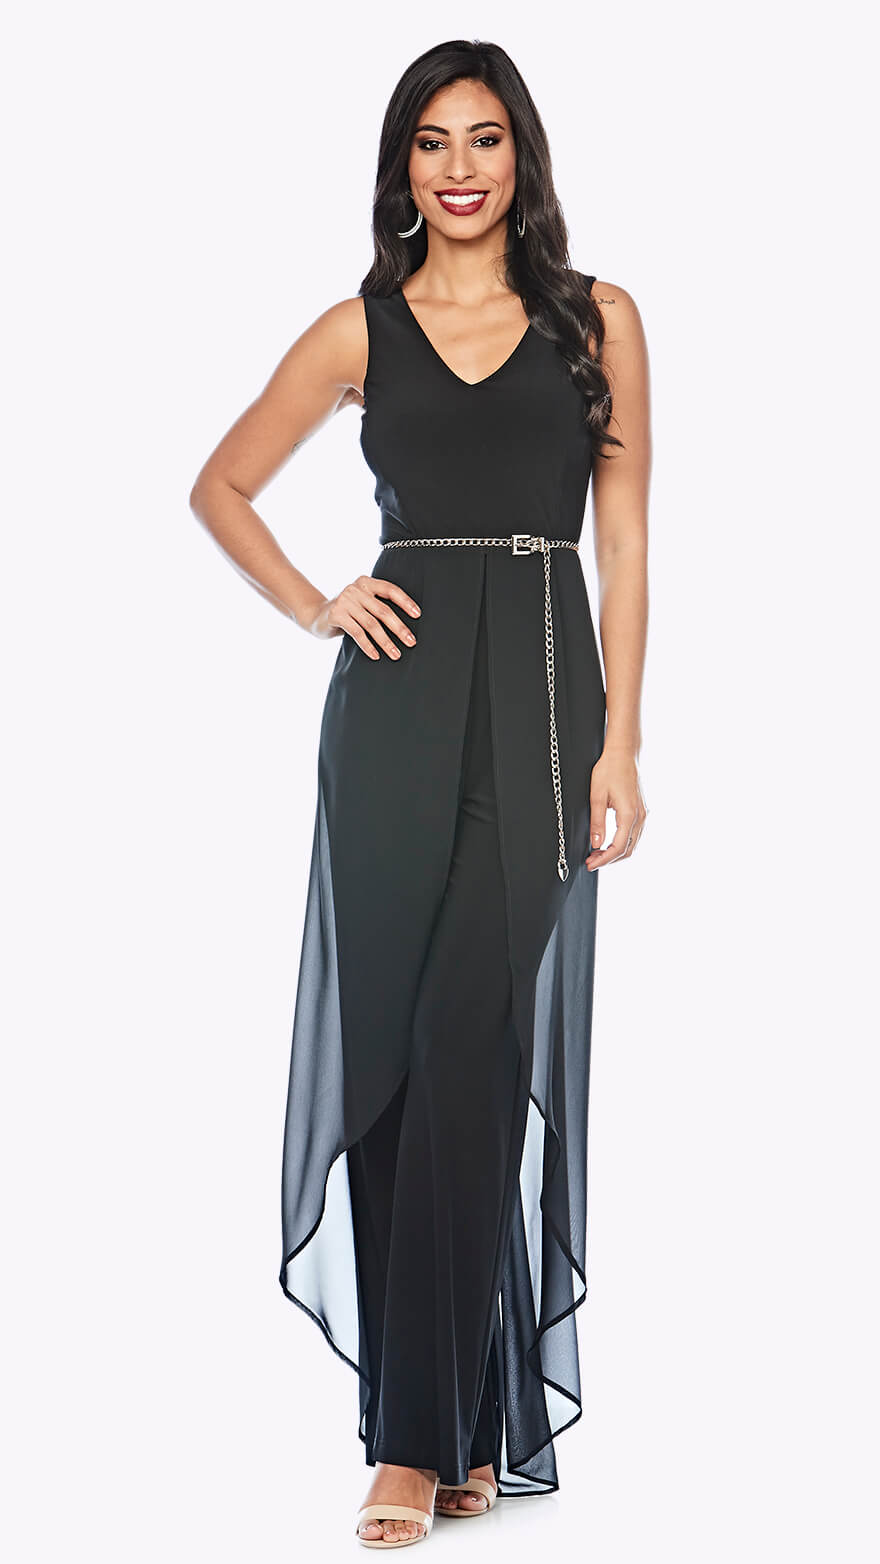 Z0224 V neck jumpsuit with chiffon overlay and silver belt